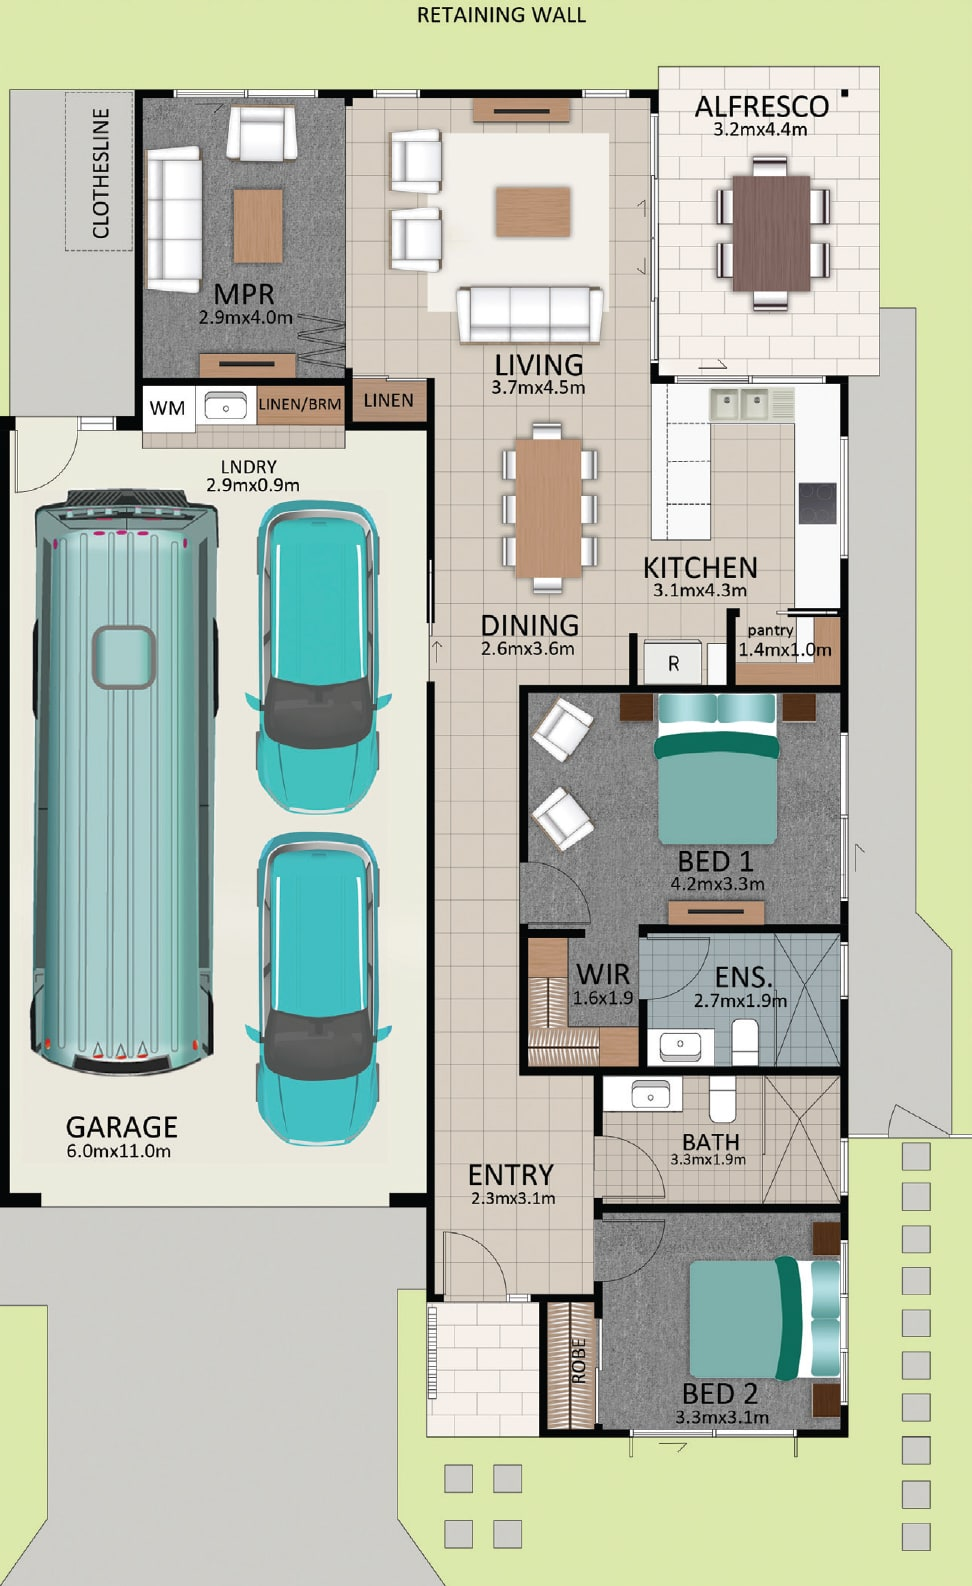 LAT25 Floorplan GAL LOT 224 FEB2021 V1 - Lot 224